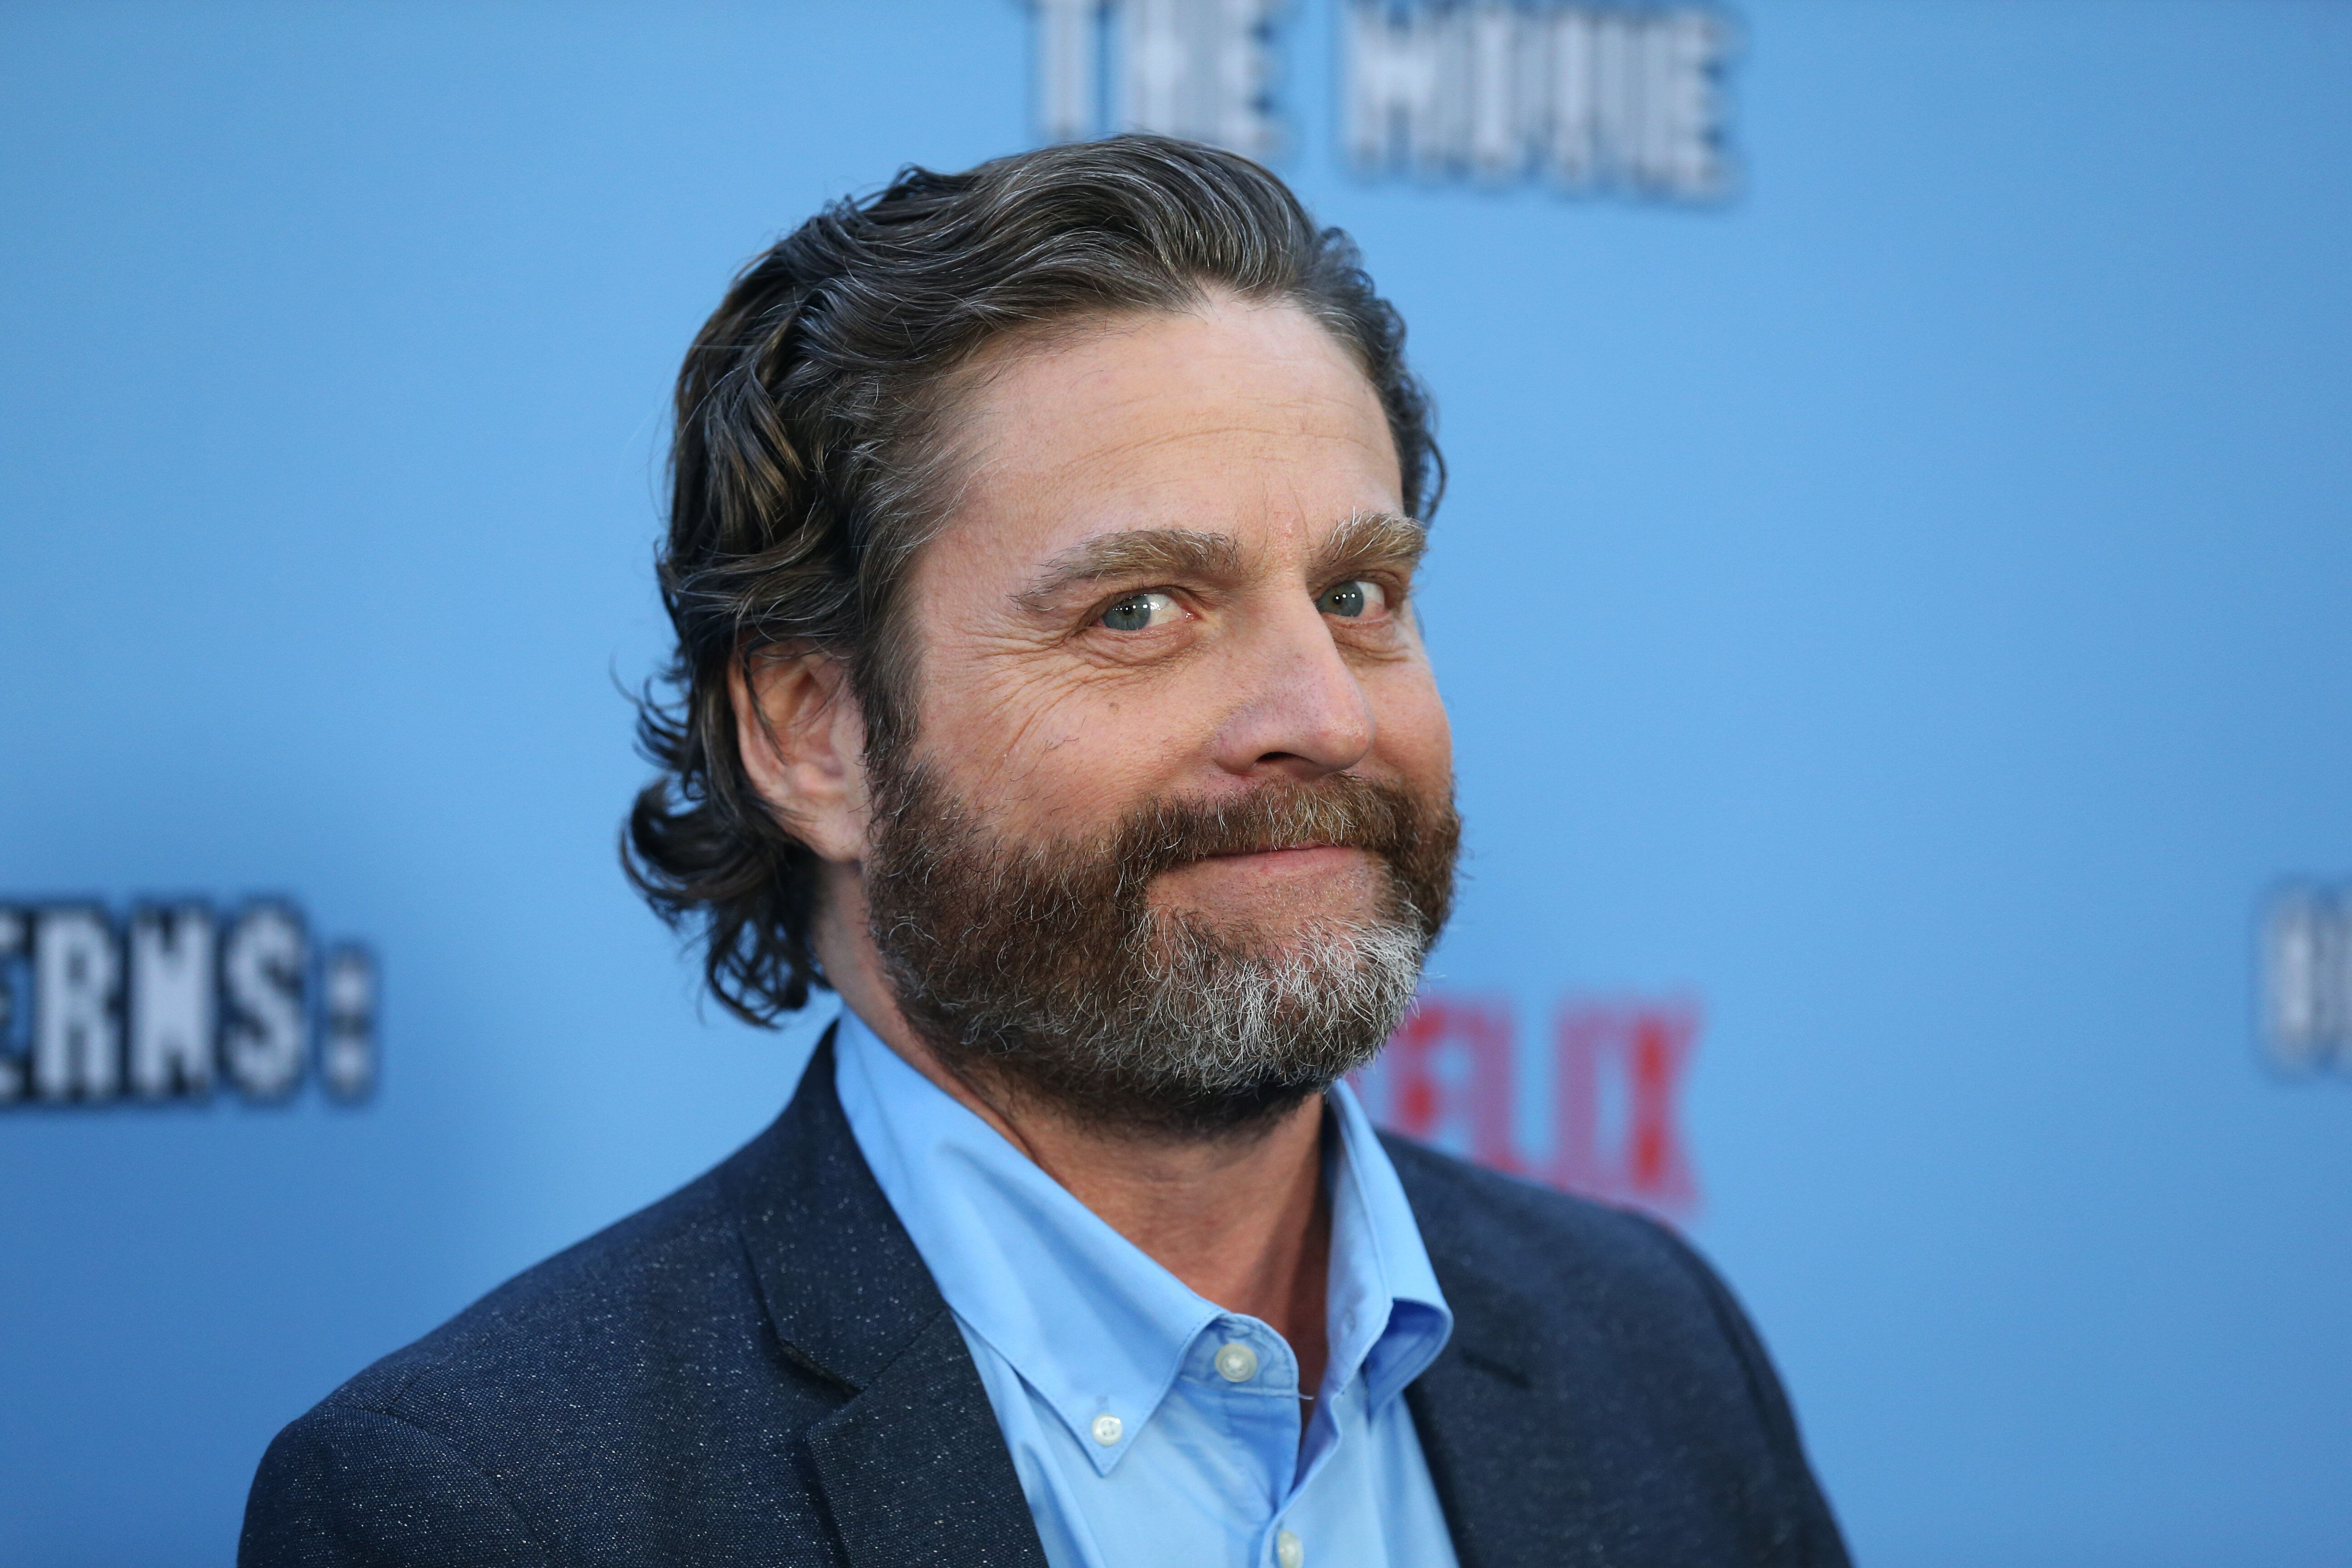 zach galifianakis filmszach galifianakis laugh, zach galifianakis instagram, zach galifianakis meme, zach galifianakis movies, zach galifianakis between two ferns, zach galifianakis 2019, zach galifianakis gif, zach galifianakis wife, zach galifianakis height, zach galifianakis фильмы, zach galifianakis benedict, zach galifianakis films, zach galifianakis nod gif, zach galifianakis insta, zach galifianakis laugh meme, zach galifianakis brad pitt, zach galifianakis wiki, zach galifianakis conan, zach galifianakis greek, zach galifianakis bruce willis